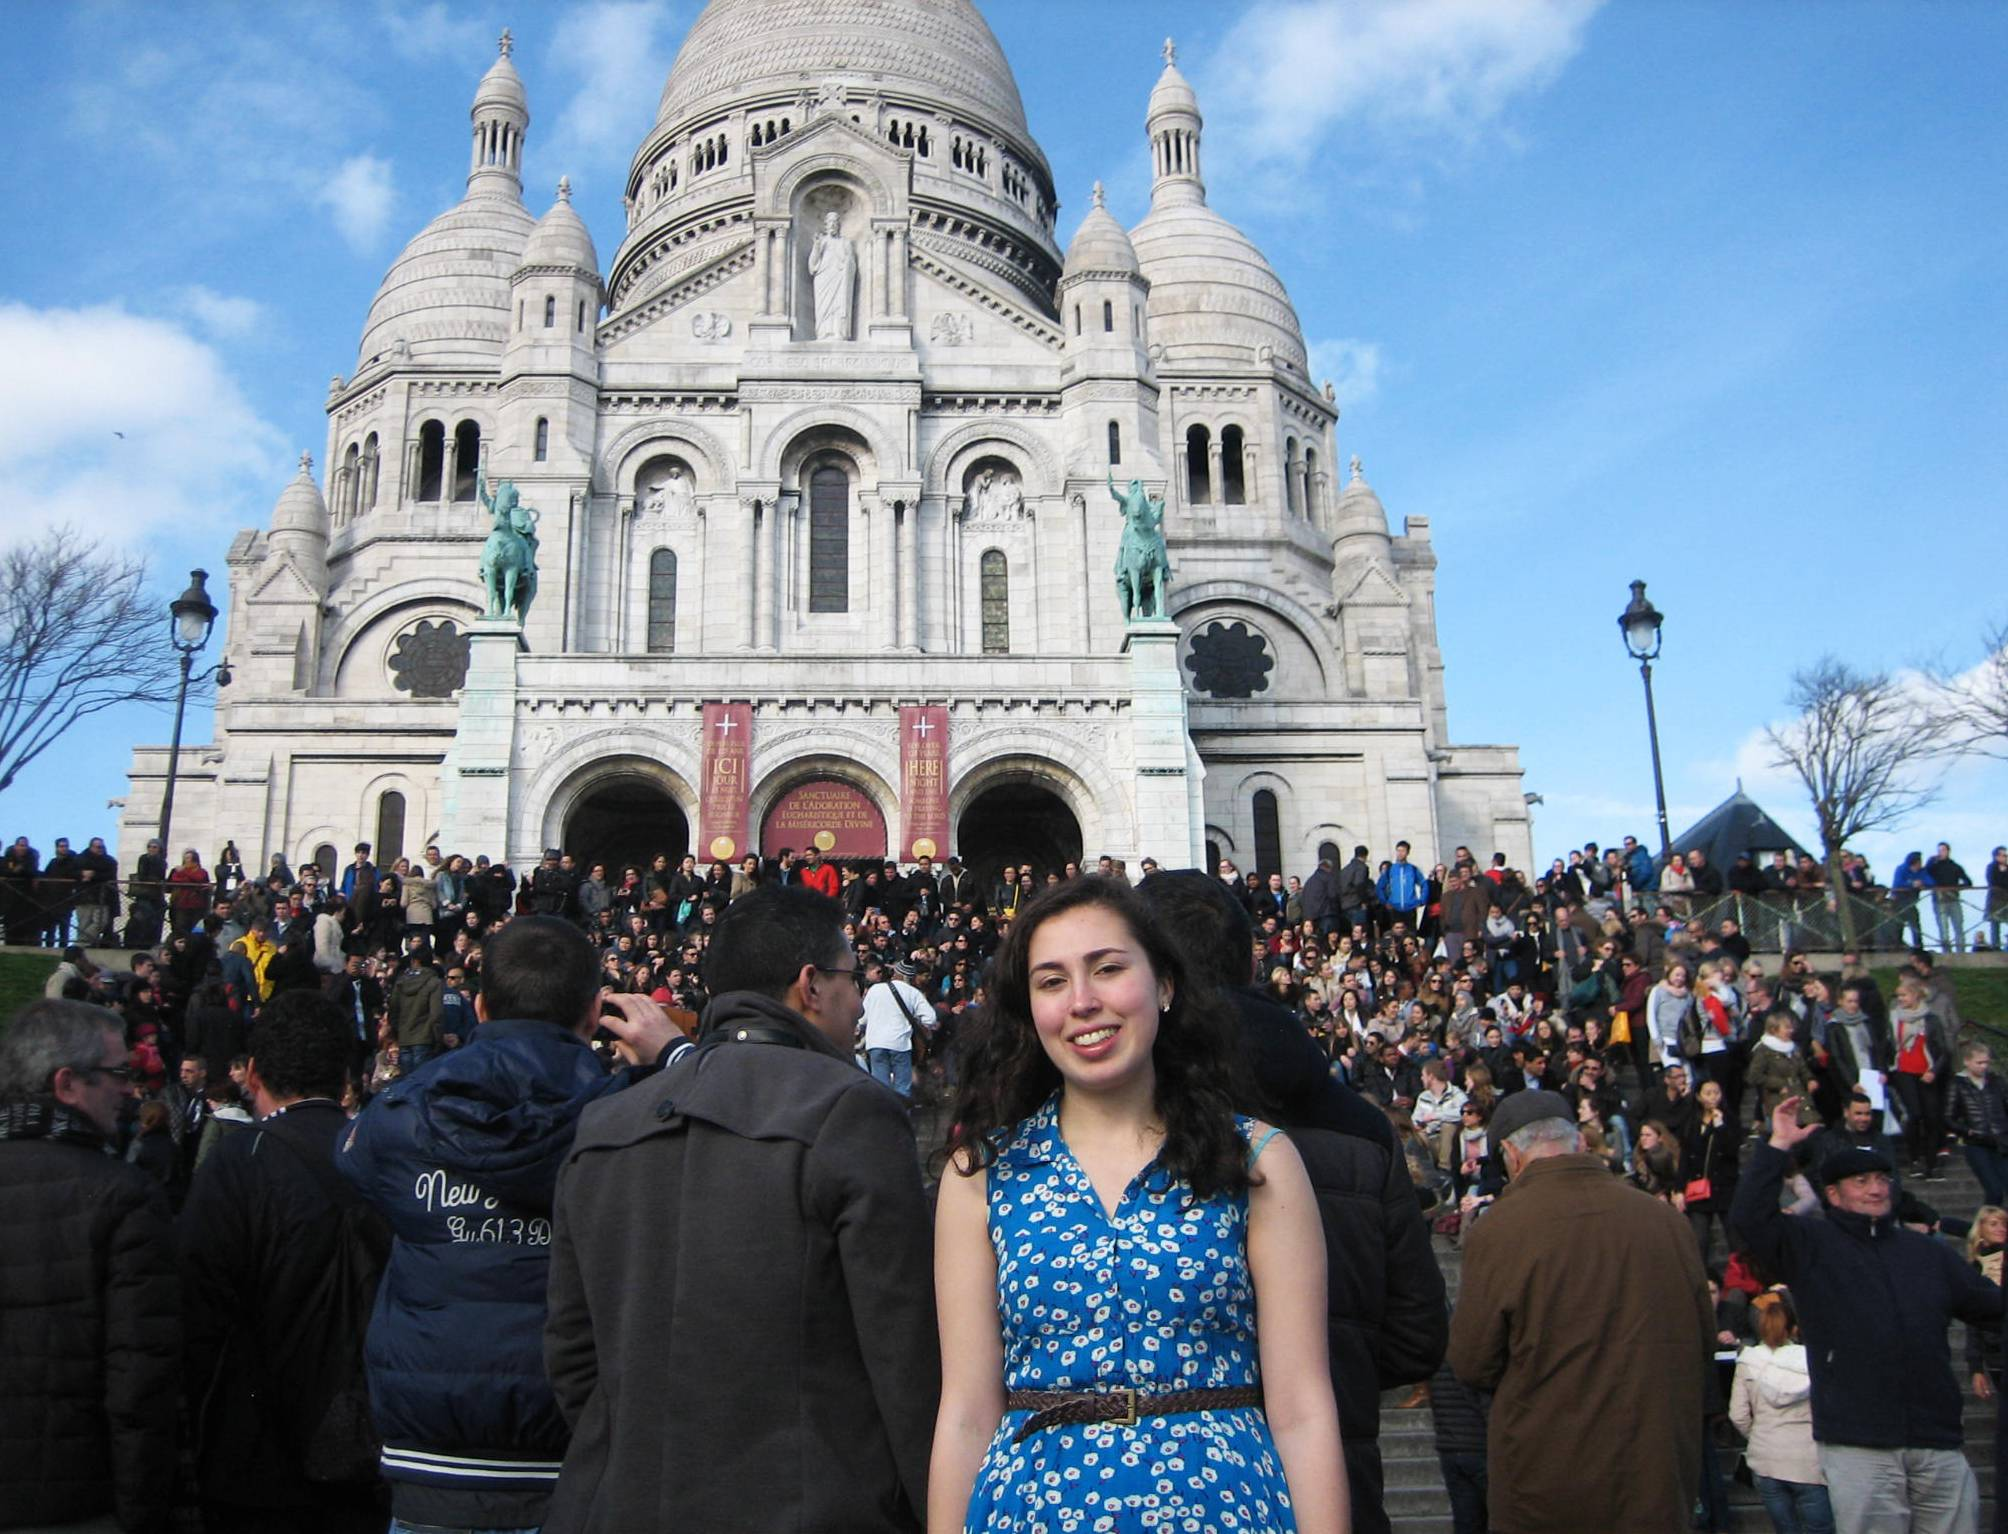 This image provided by Jane Tabachnick shows her daughter Mel Bandler on the steps of Sacre Couer, the famous church in Paris. Bandler studied in Paris as part of her work for a degree from Rutgers University, and stayed in touch with her mom using Skype and GoogleChat. Free and low-cost apps and websites have made it easy for students to remain in contact with families abroad, unlike a generation ago, when Tabachnick studied in Paris and relied on airmailed letters as the main way to stay in touch with her parents.